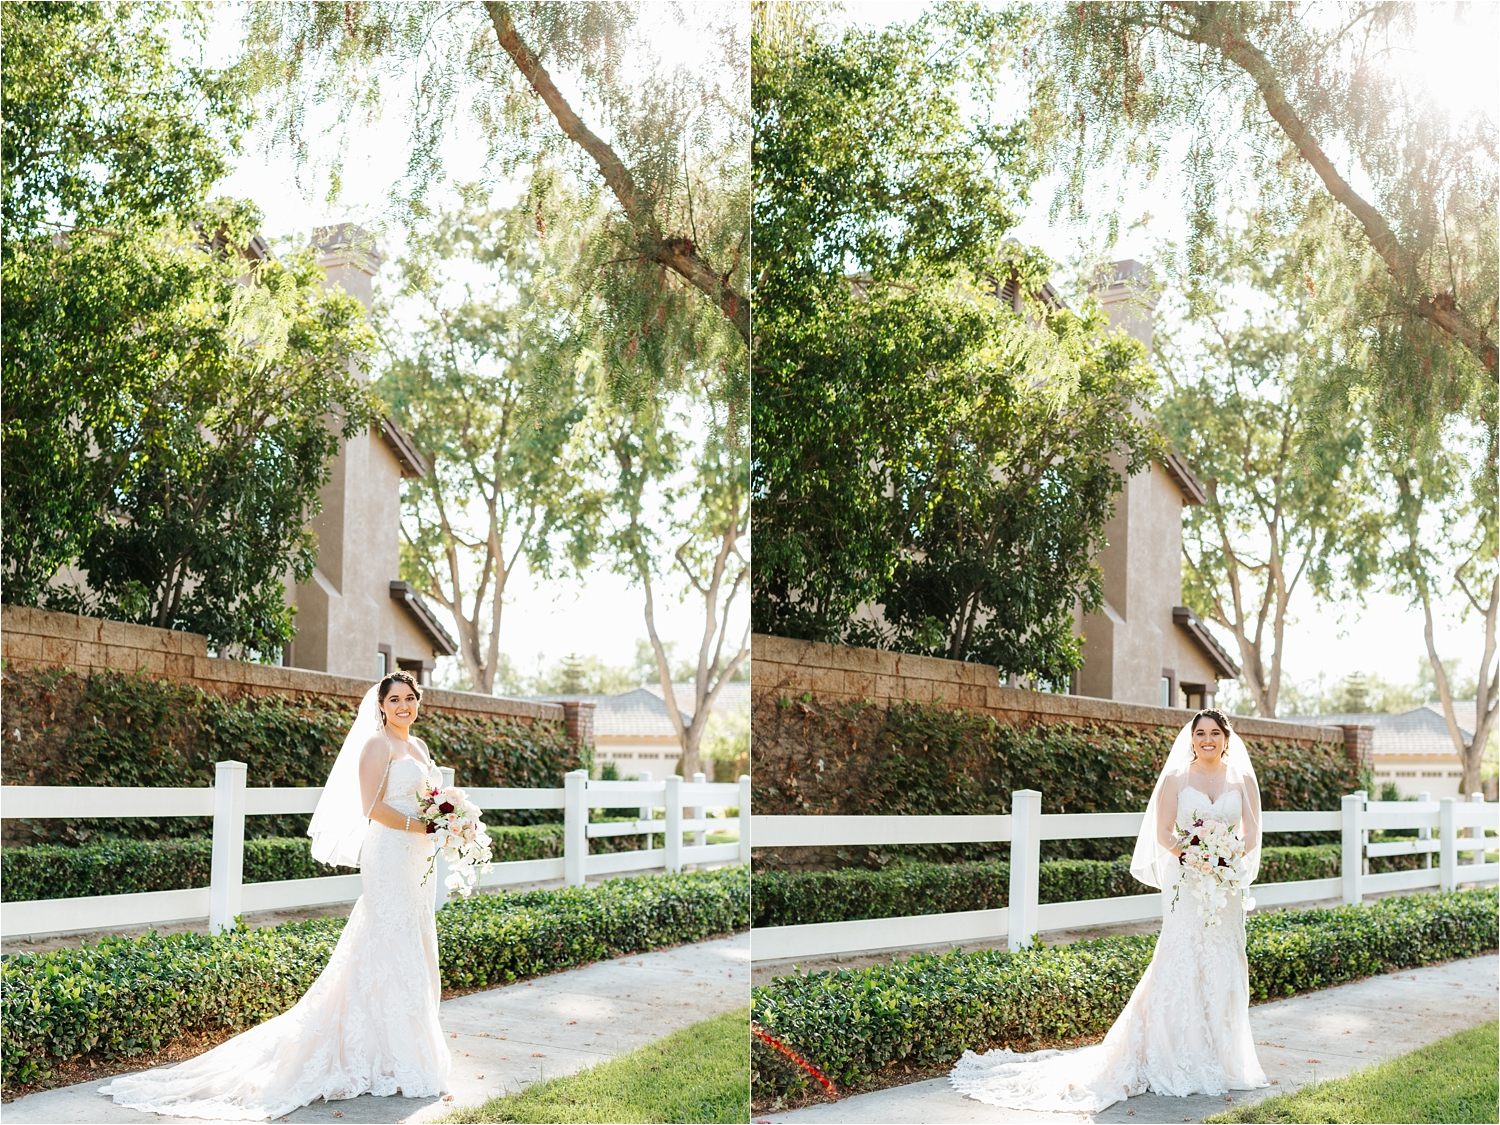 Natural Light Wedding Photographer - Bride Portraits in her Wedding Dress - California Wedding Photographer - https://brittneyhannonphotography.com